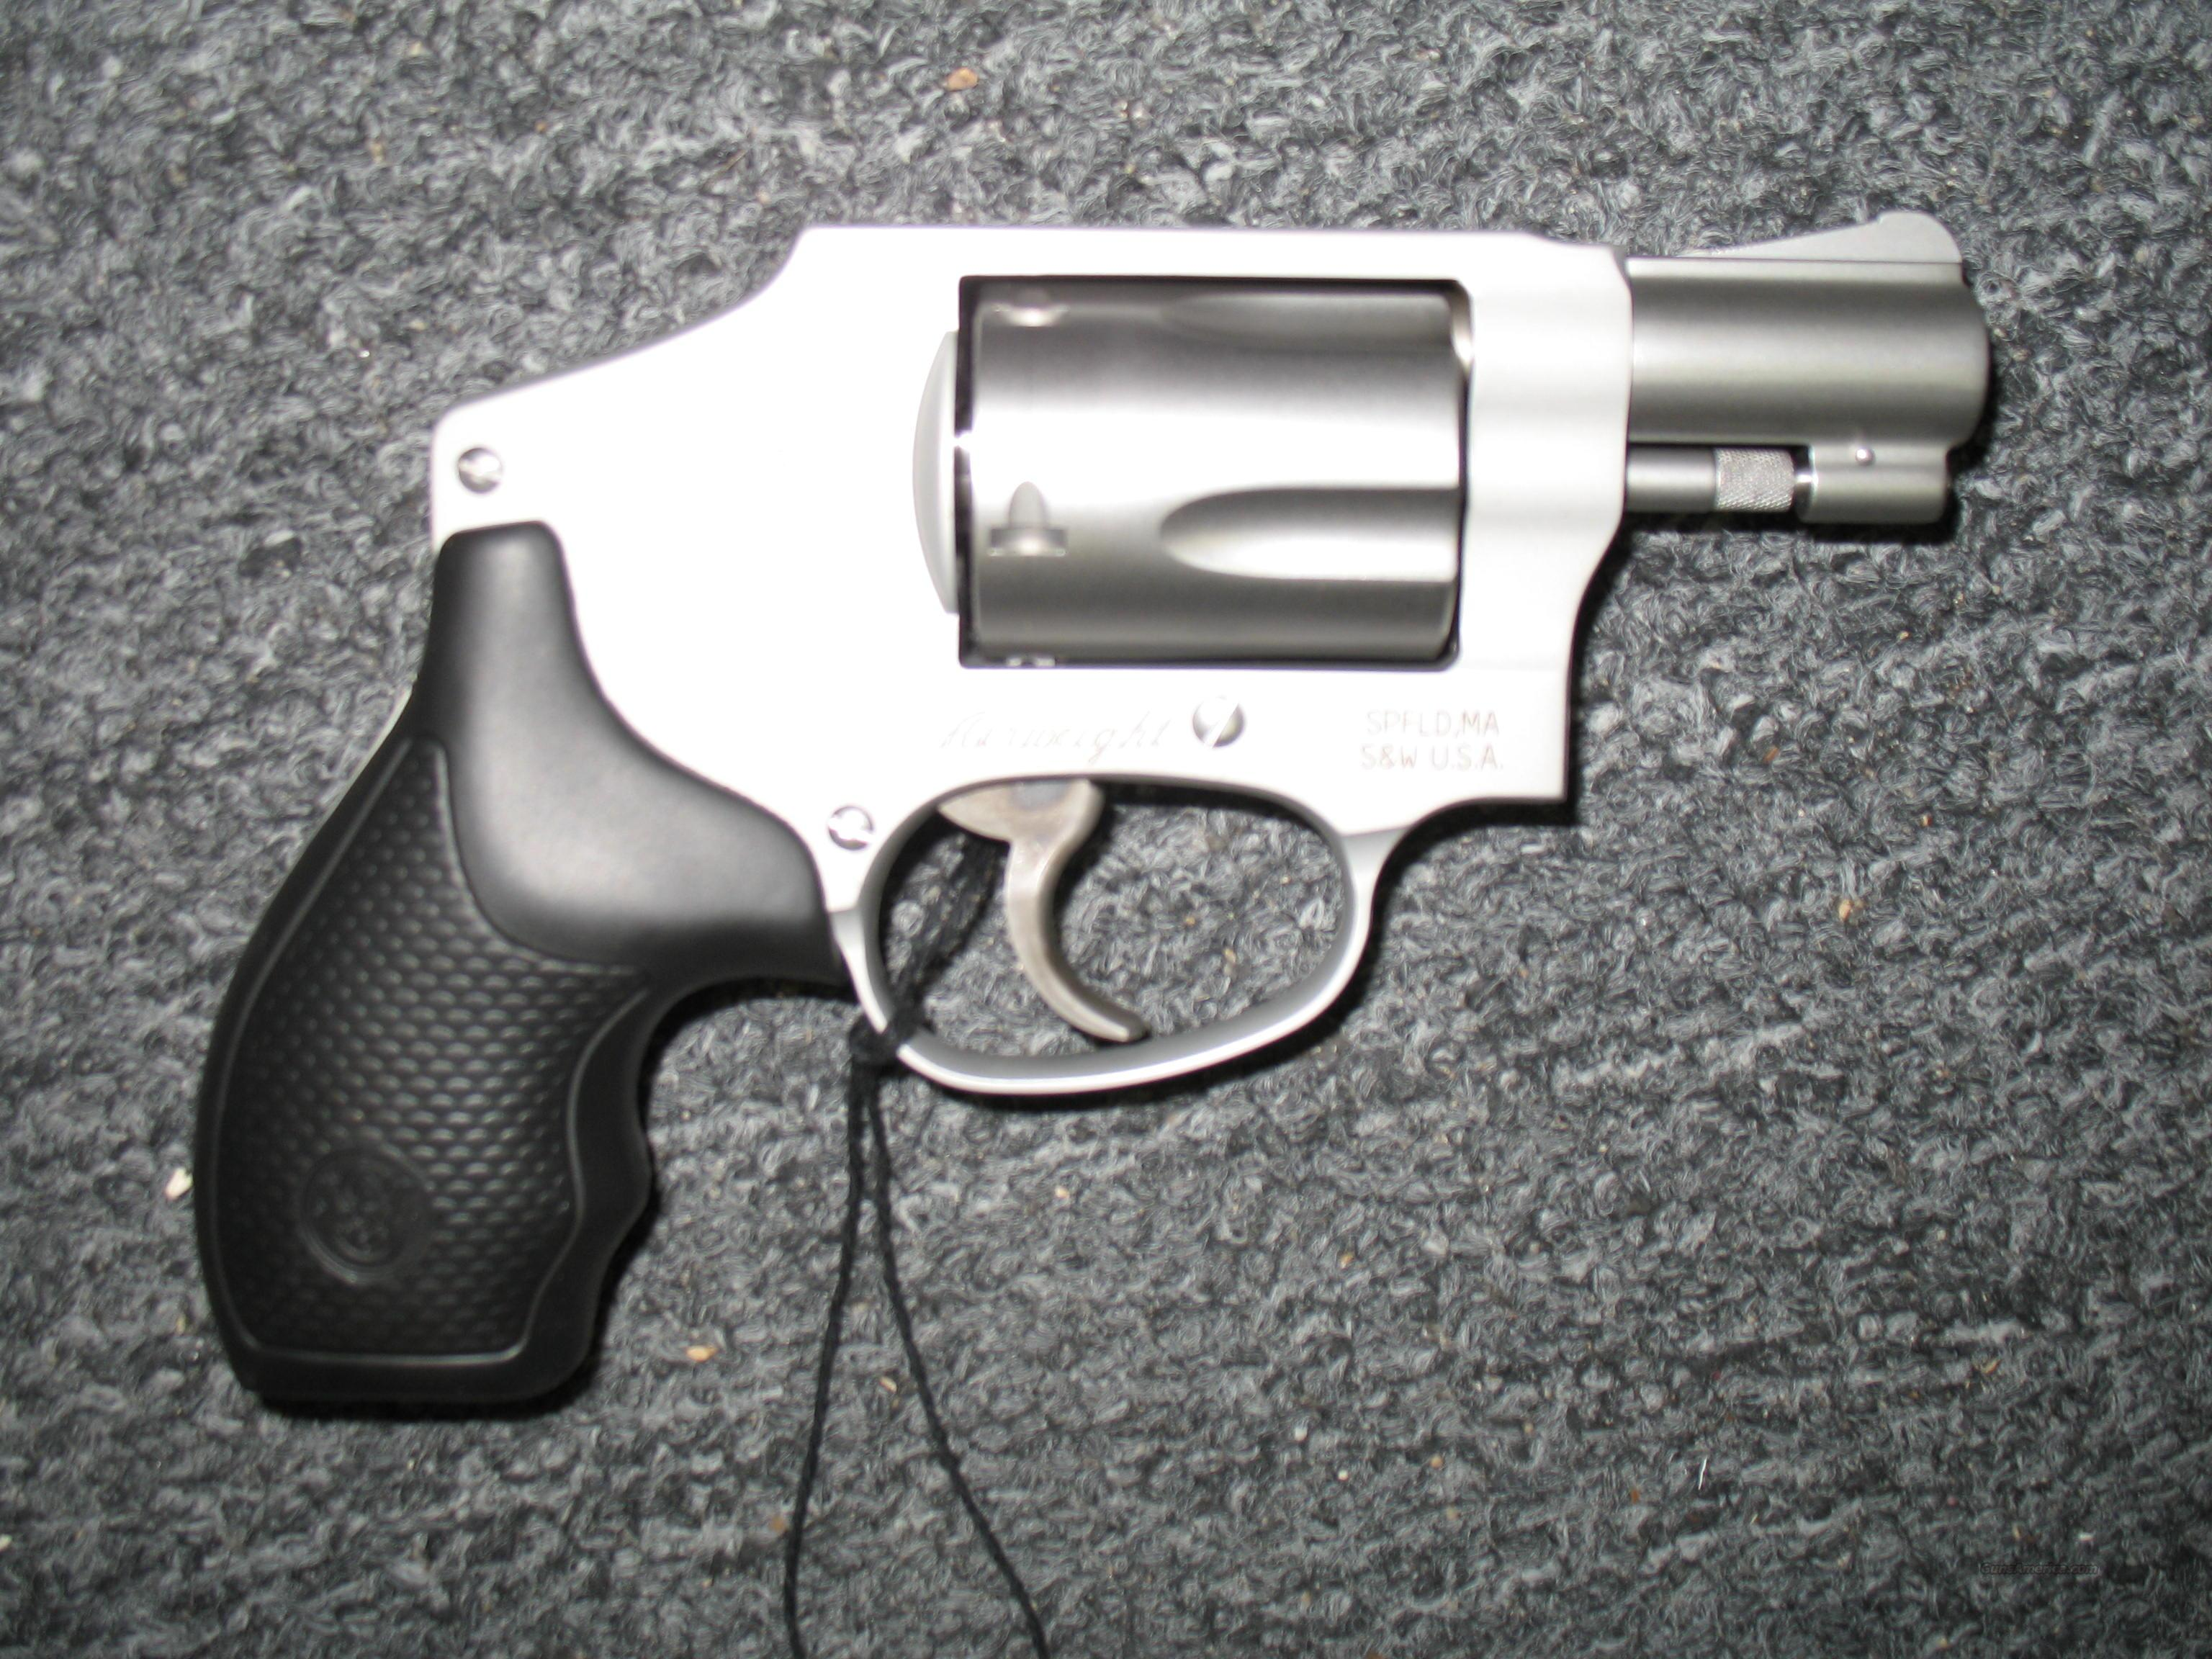 642-2  Guns > Pistols > Smith & Wesson Revolvers > Pocket Pistols